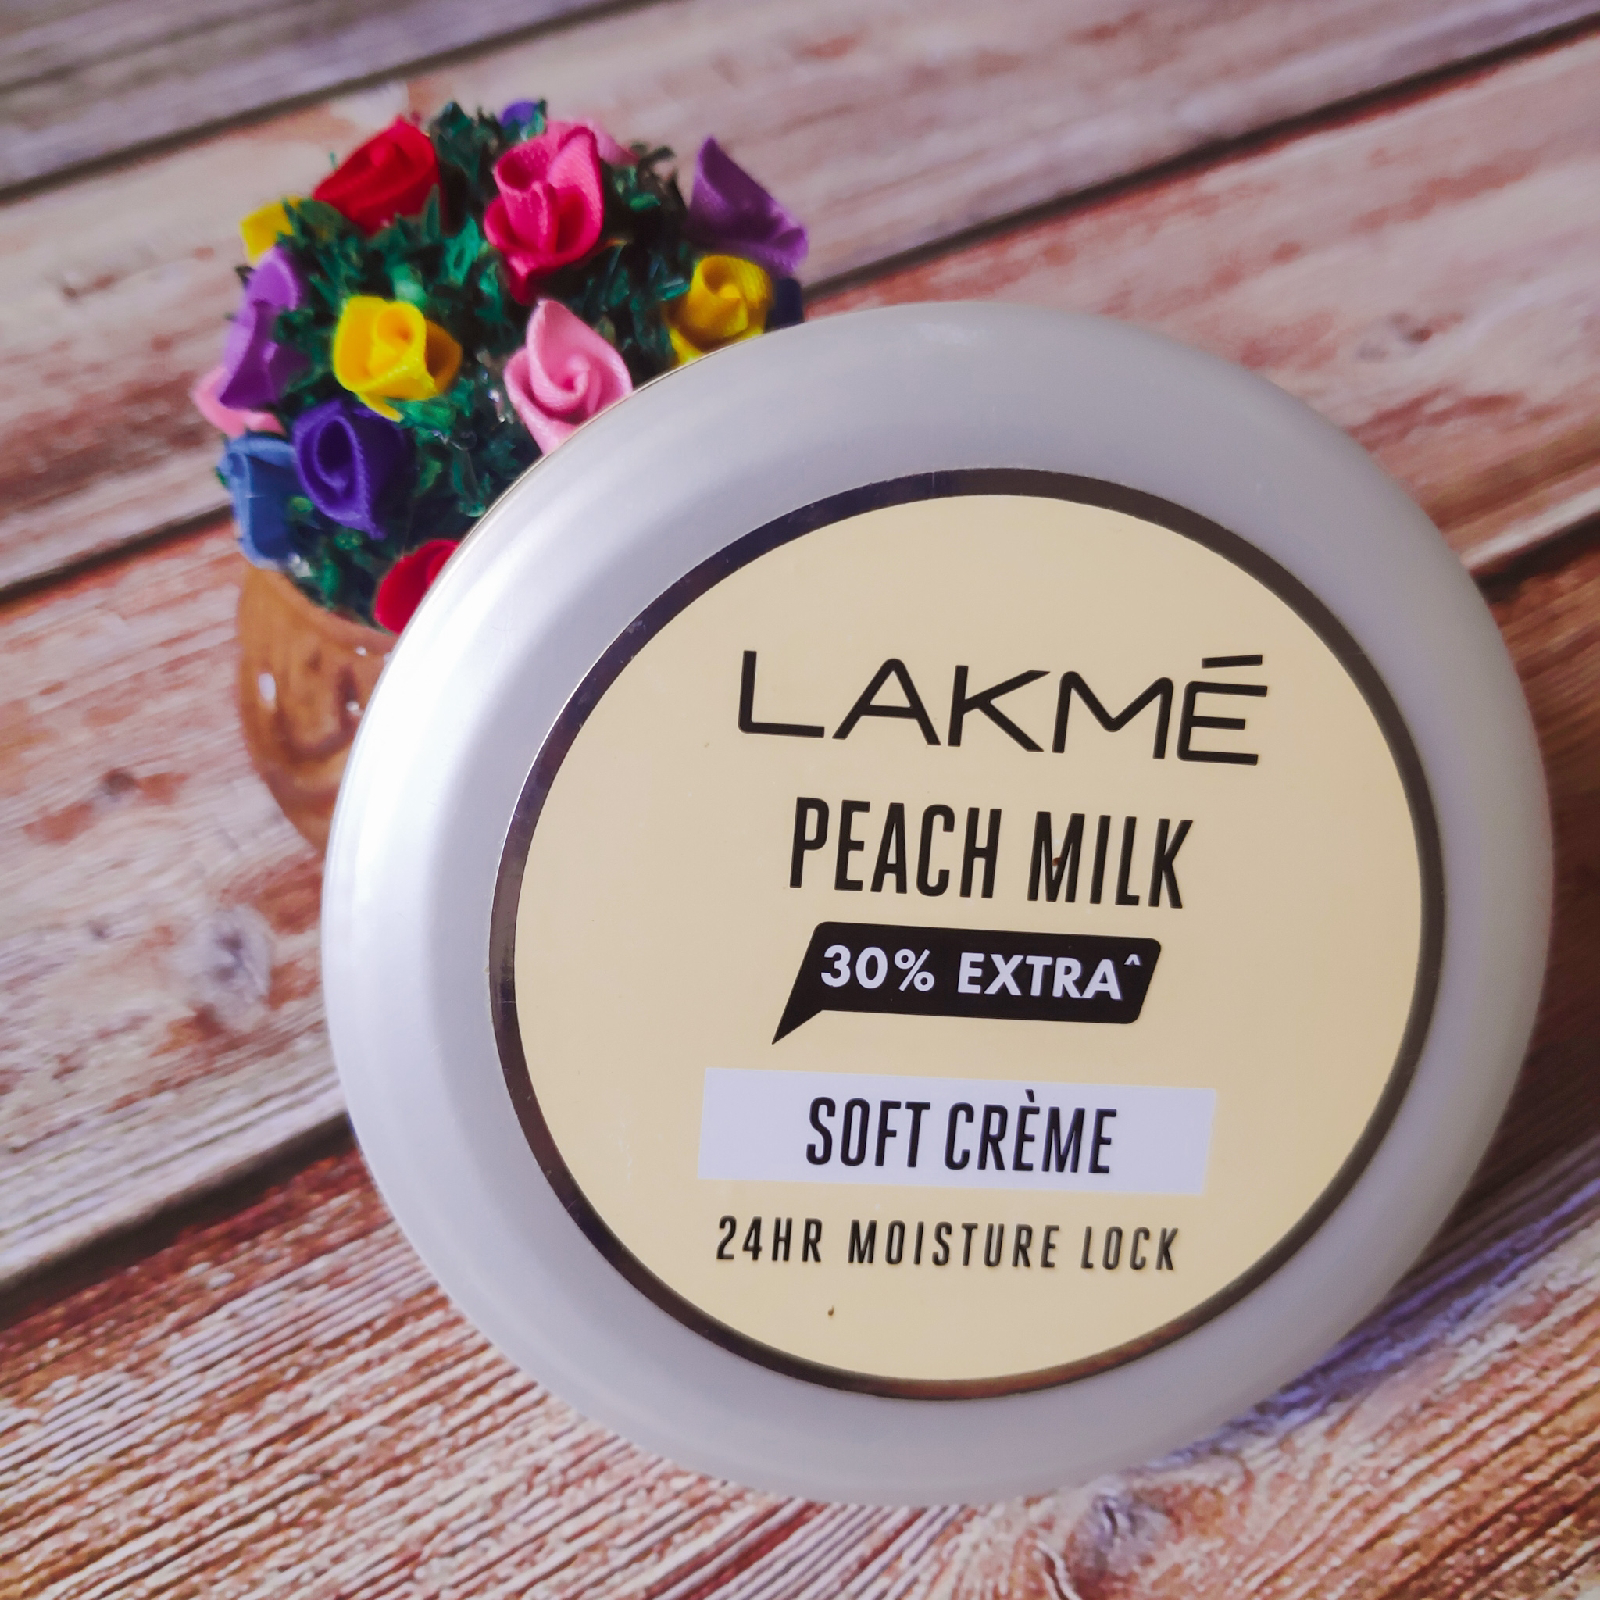 LAKME PEACH MILK SOFT CREAM REVIEW | BEST AFFORDABLE CREAM UNDER 100 || PEACHYPINKPRETTY